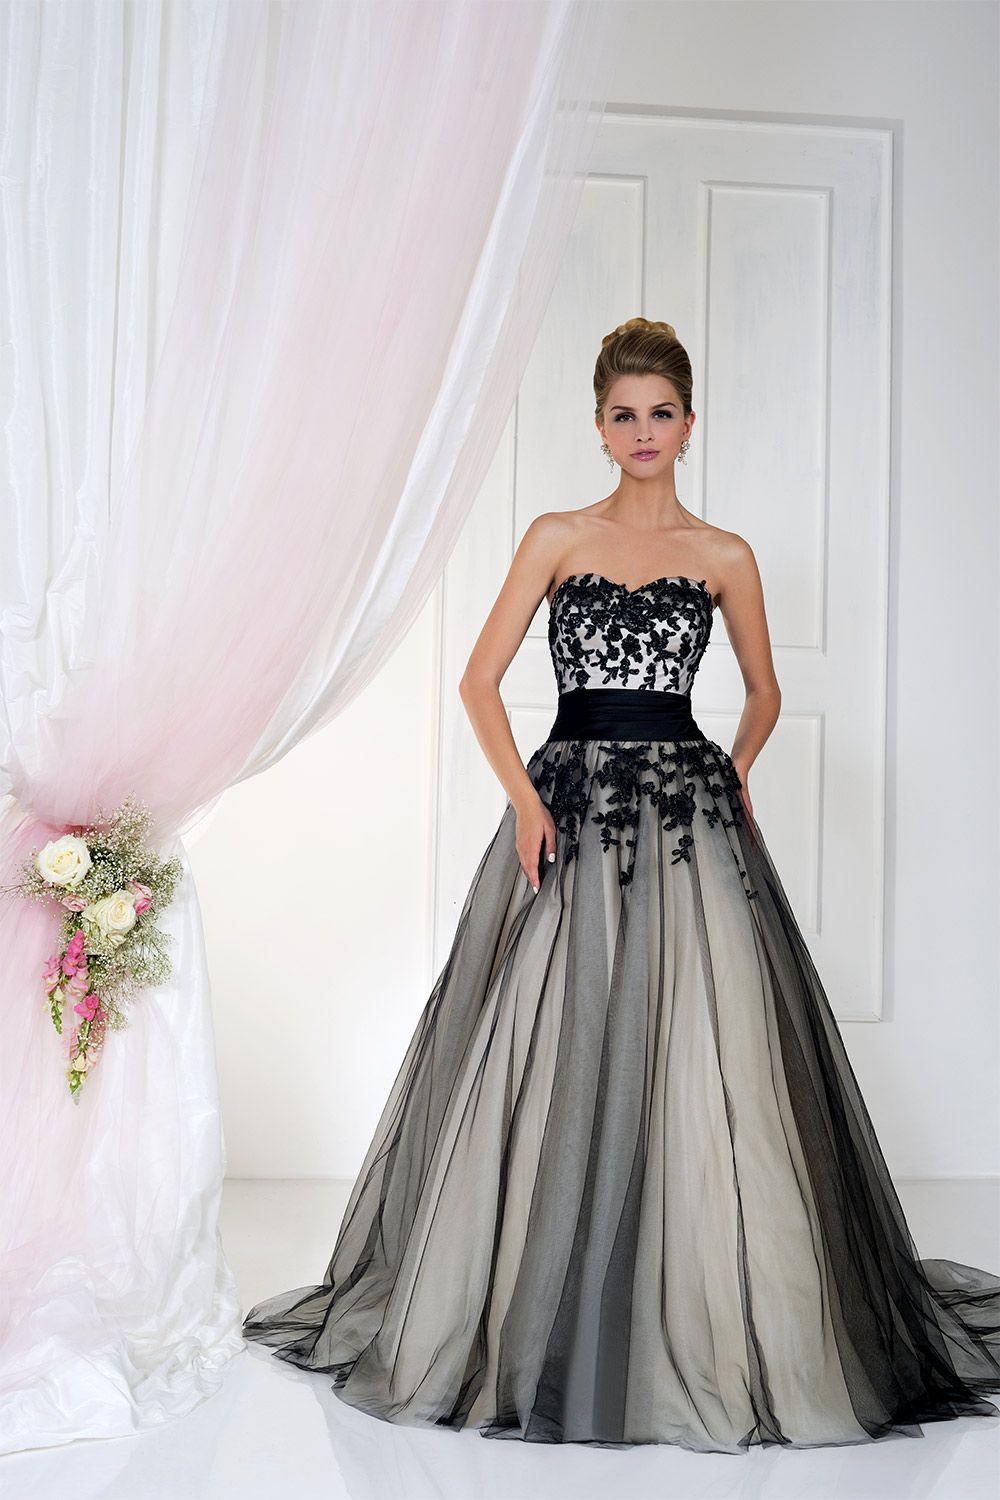 Gothic Wedding Dresses 17 Chic and Sophisticated Styles